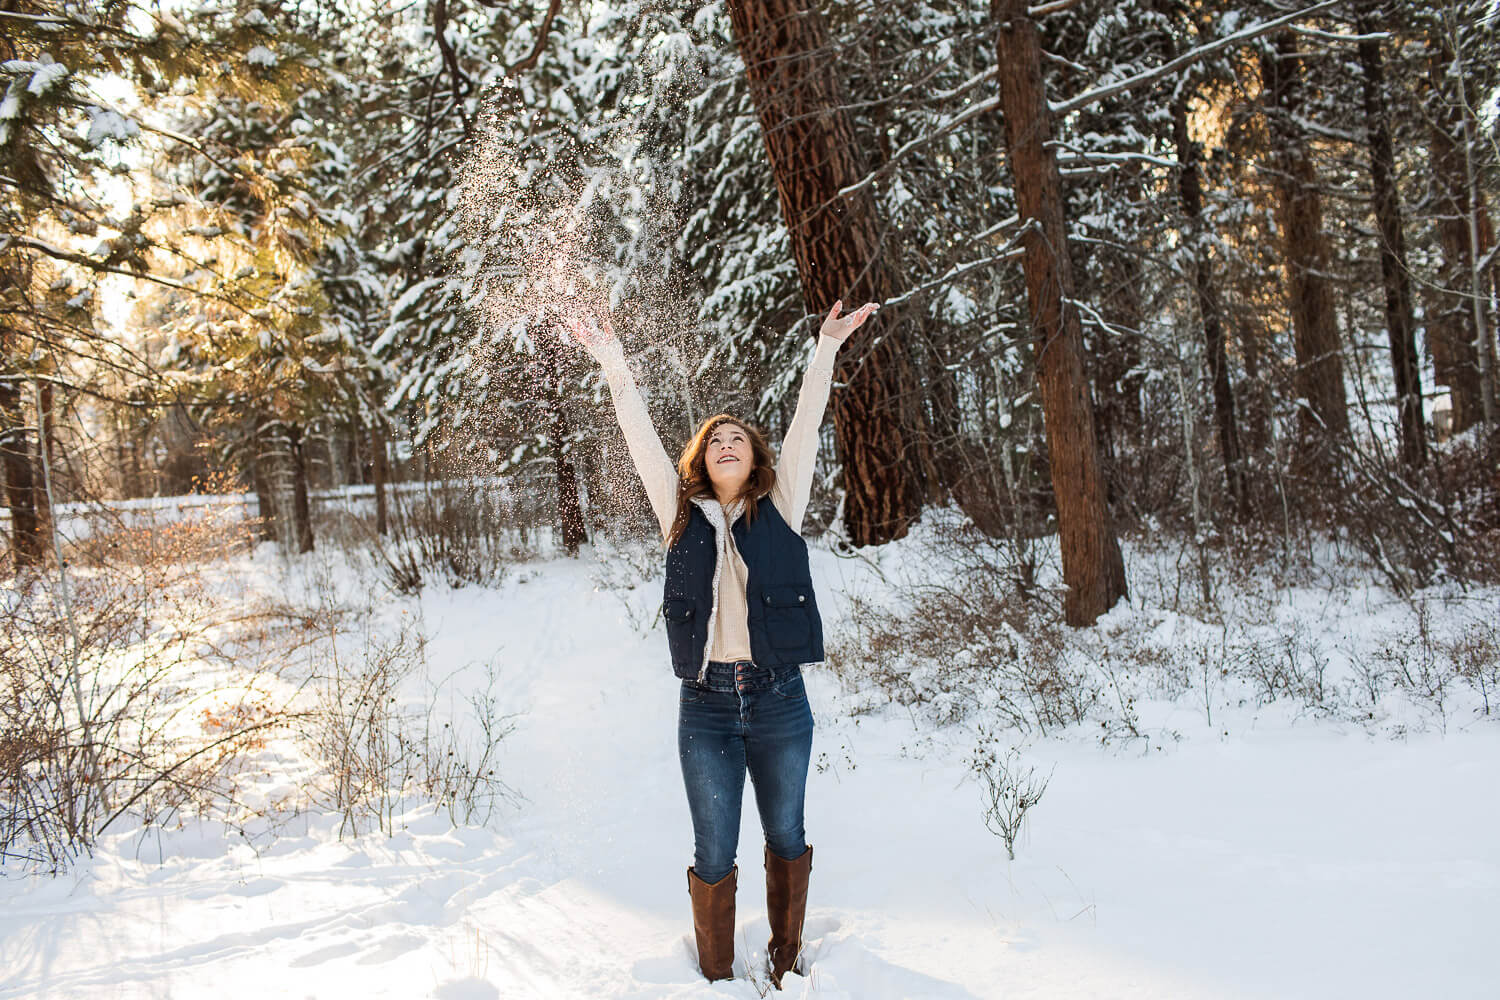 High school senior girl throwing snow in the air.